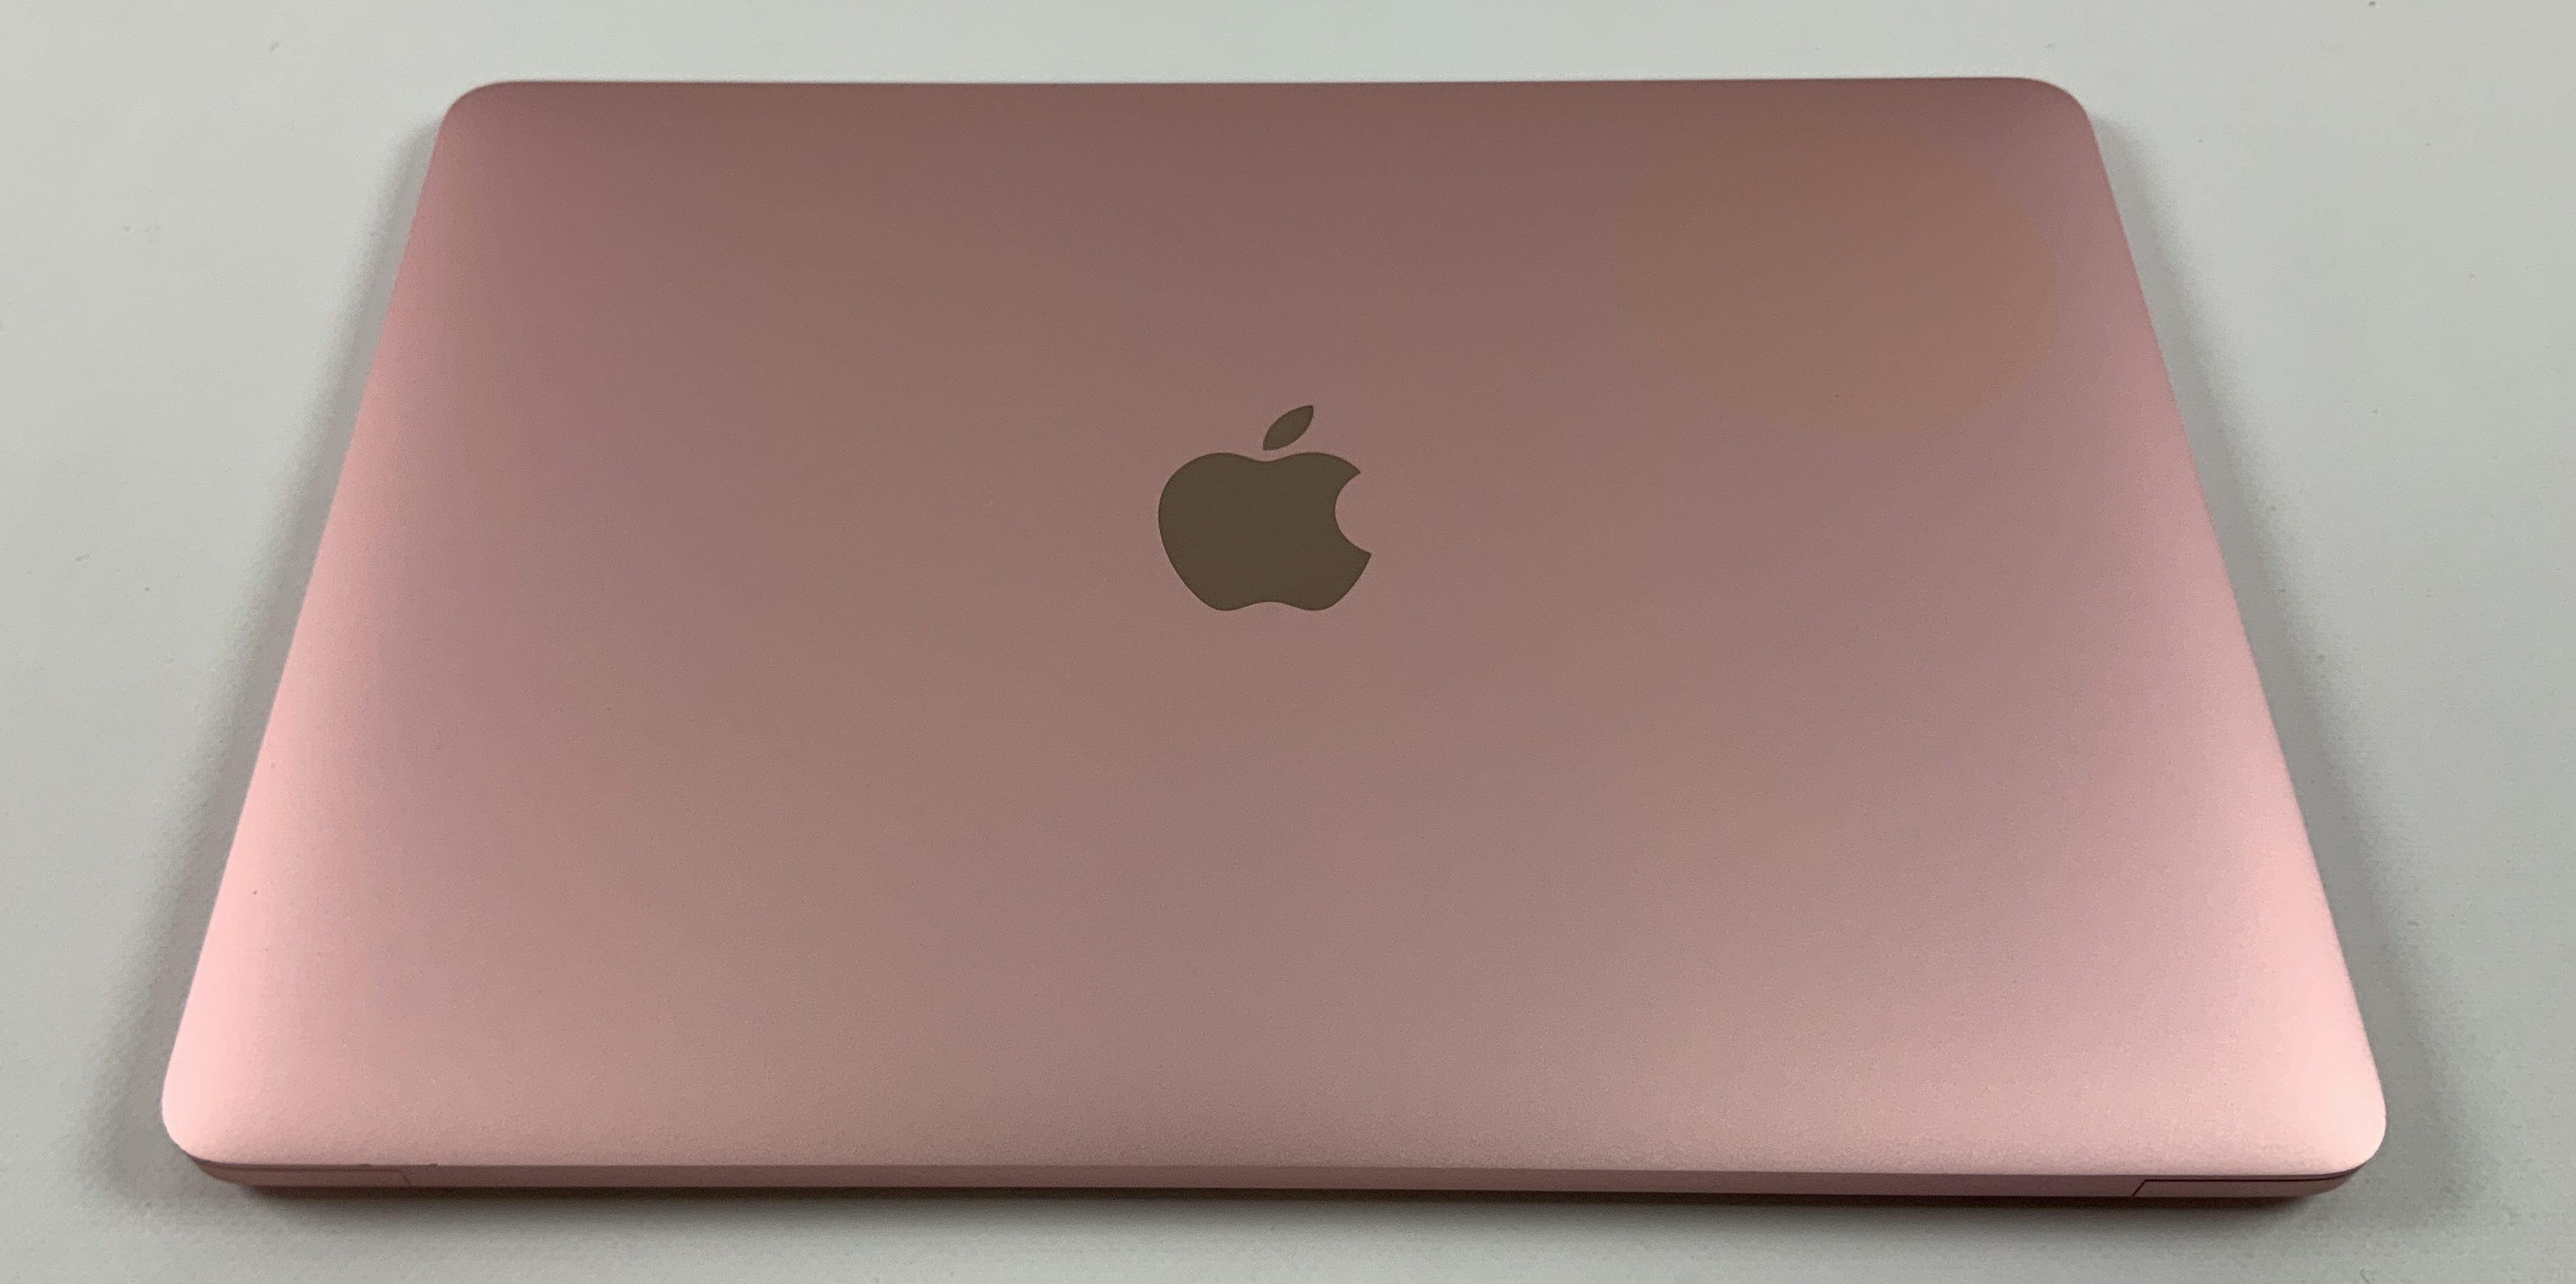 "MacBook 12"" Mid 2017 (Intel Core i7 1.4 GHz 16 GB RAM 512 GB SSD), Rose Gold, Intel Core i7 1.4 GHz, 16 GB RAM, 512 GB SSD, image 2"